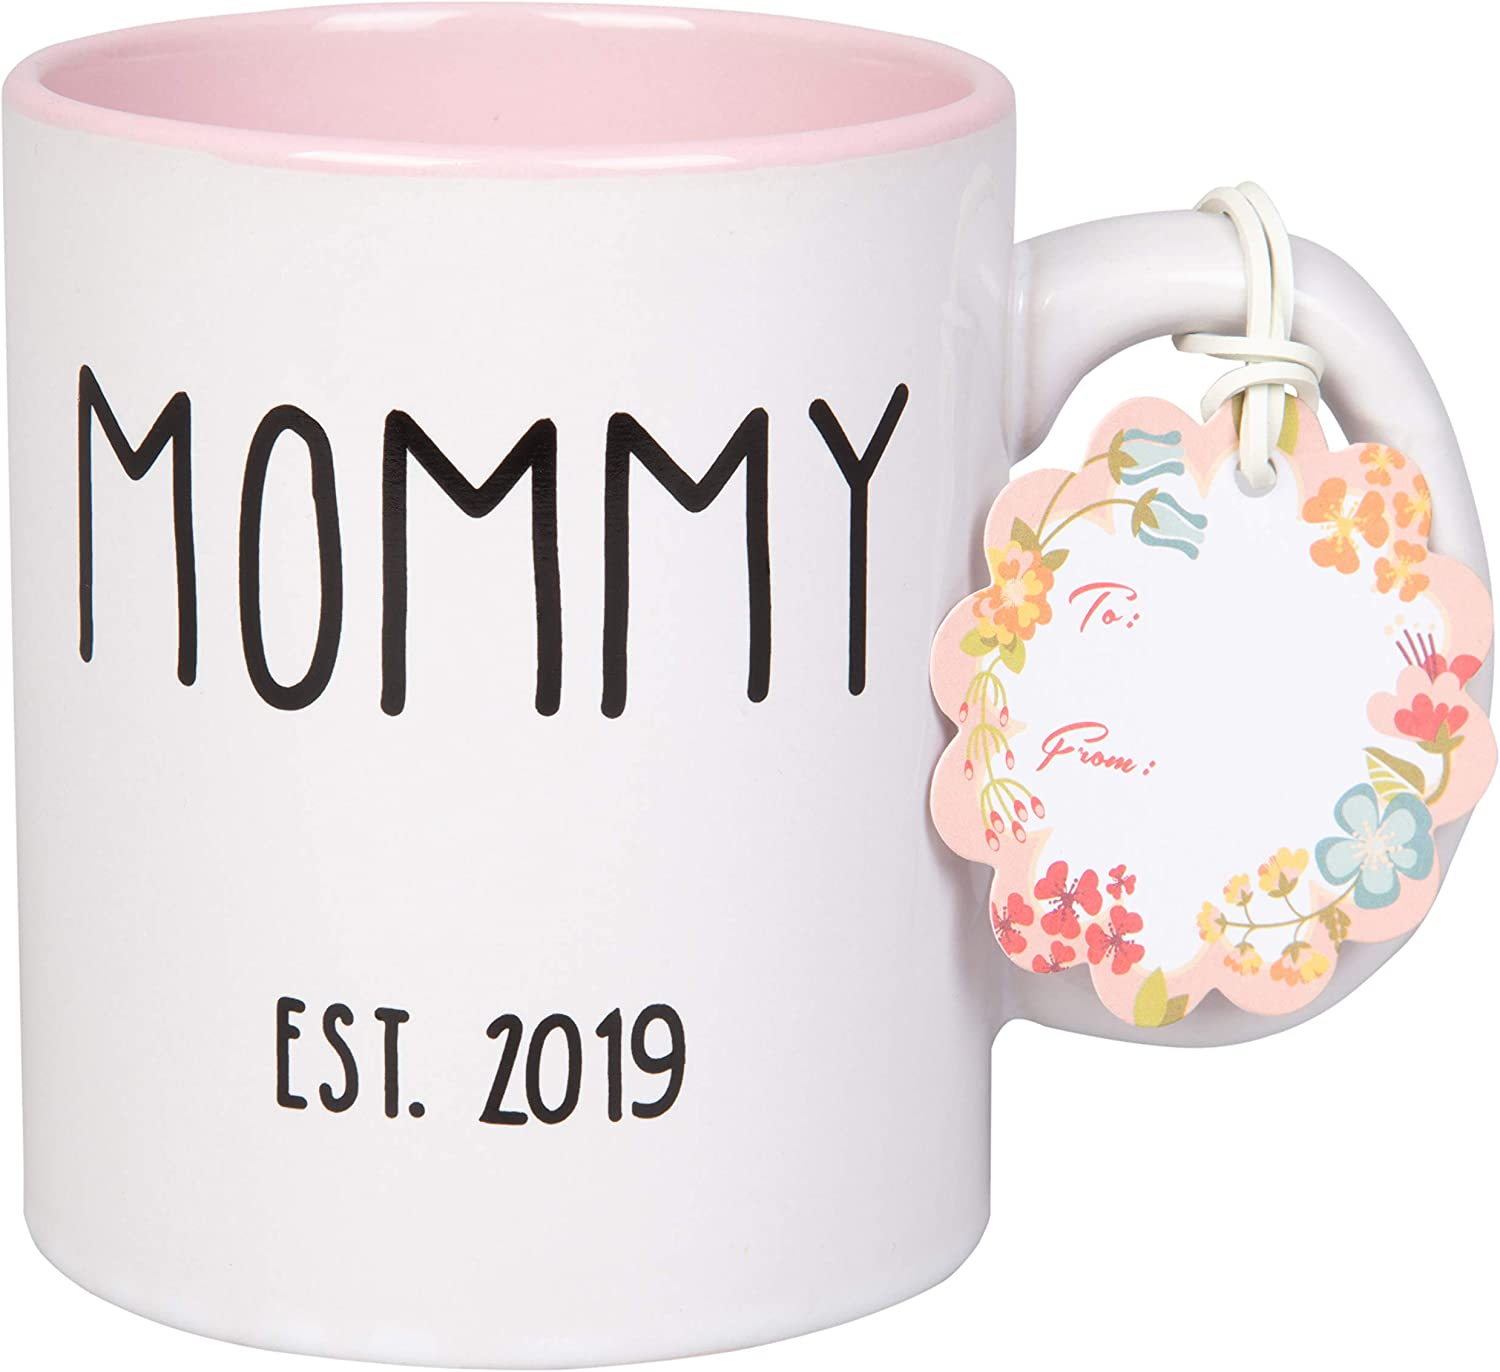 Mommy Est 2019 Coffee Mug - Pink - 15 Oz